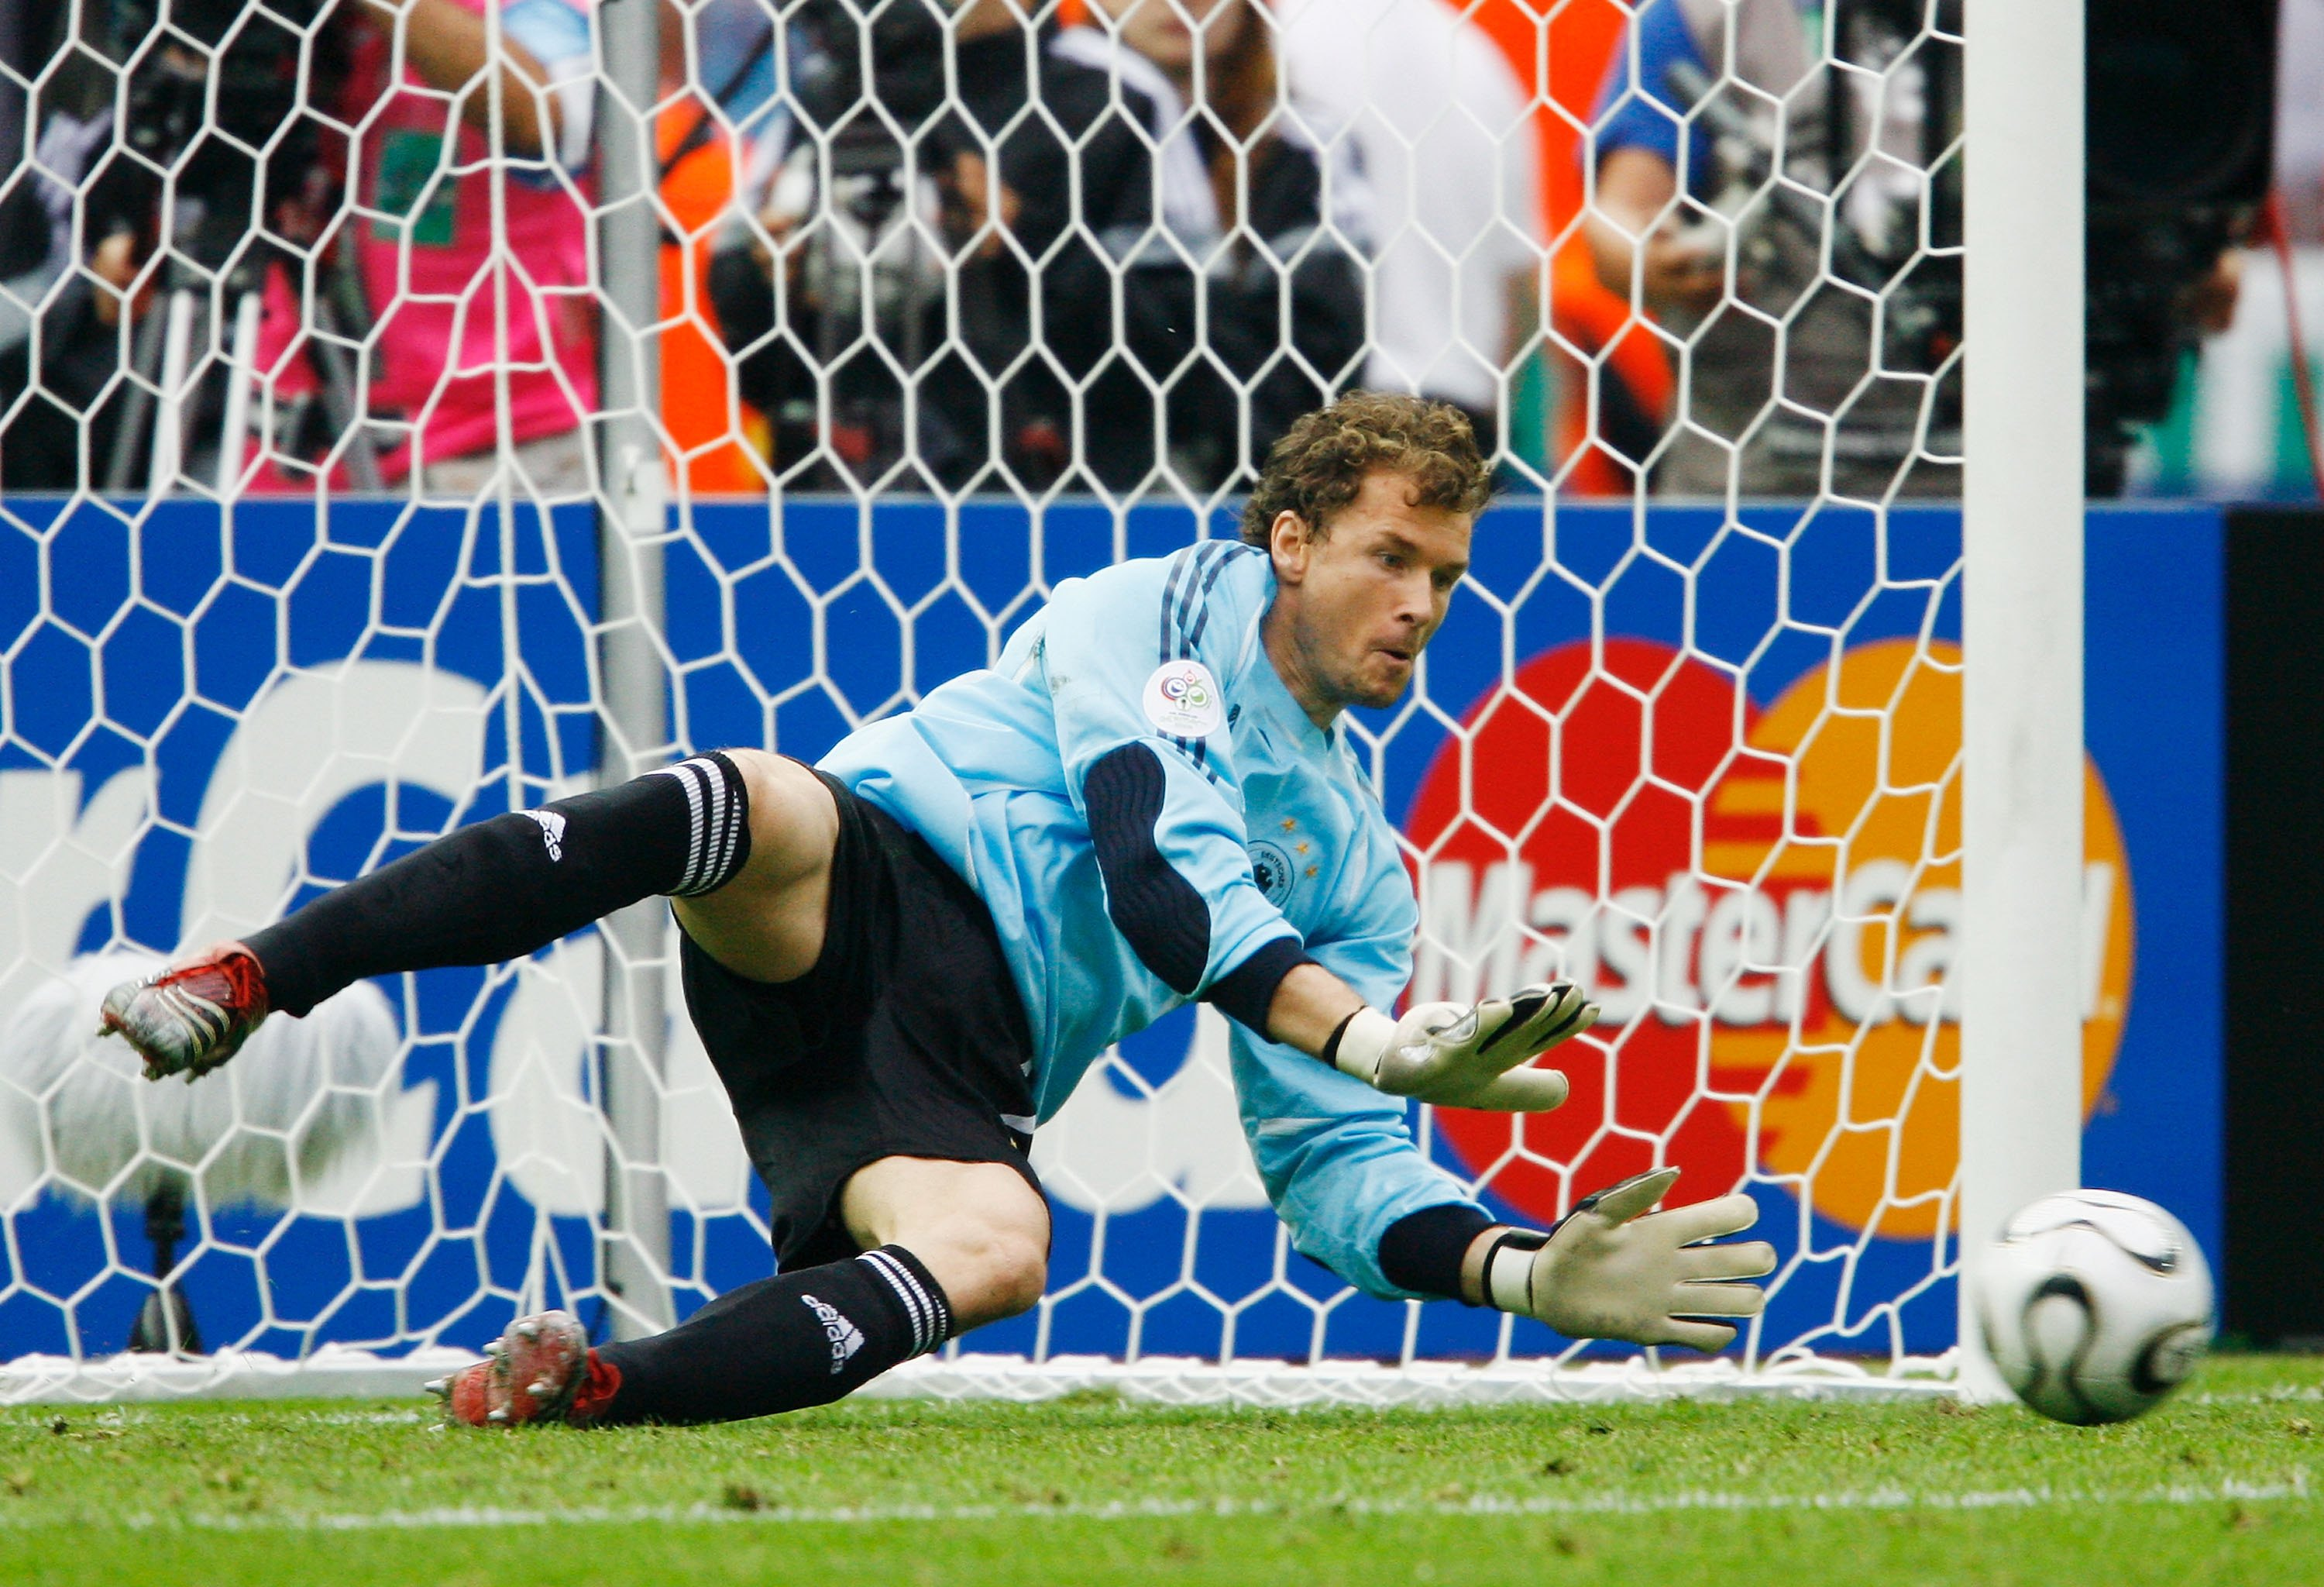 BERLIN - JUNE 30:  Jens Lehmann of Germany dives to save a penalty taken by Roberto Ayala of Argentina in a penalty shootout during the FIFA World Cup Germany 2006 Quarter-final match between Germany and Argentina played at the Olympic Stadium on June 30,